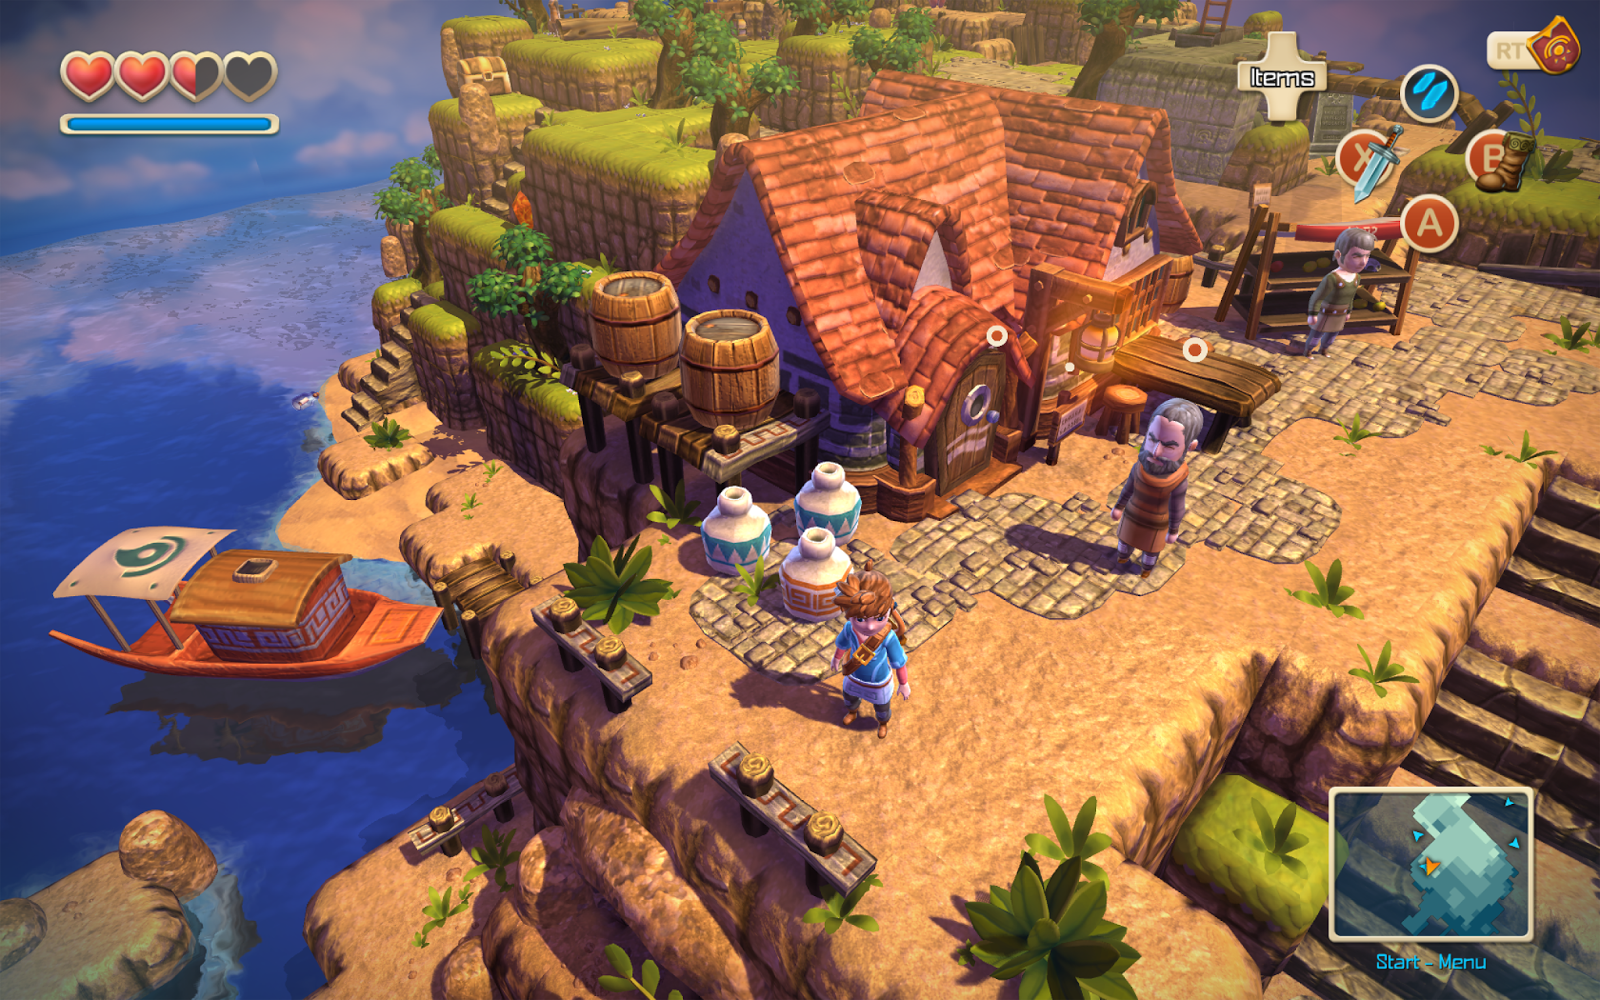 oceanhorn-screenshot-1